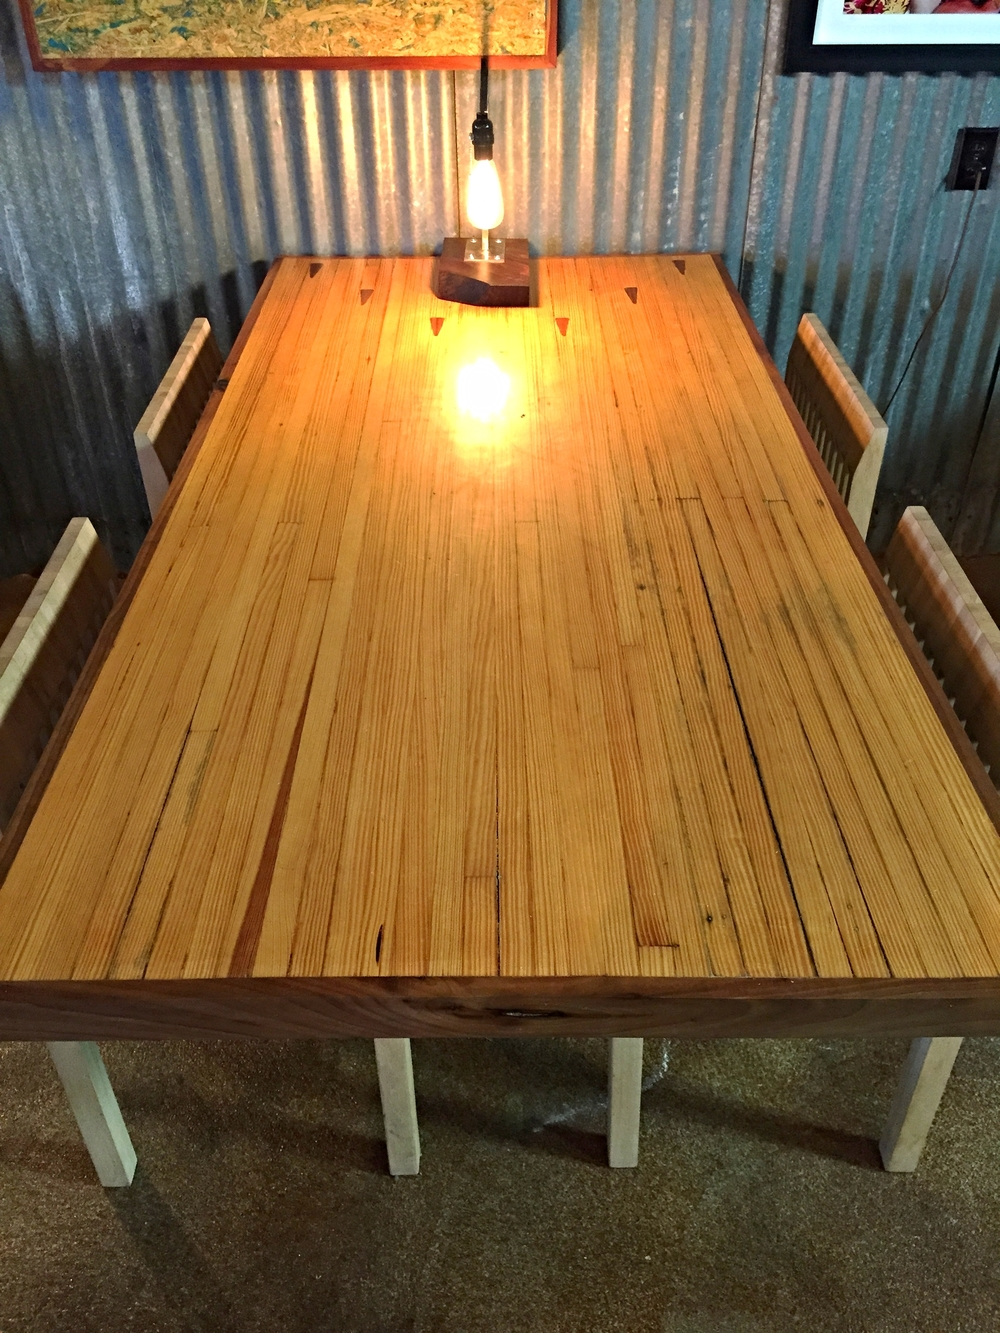 Bowling Alley Dining Table   Reclaimed In San Antonio, Texas